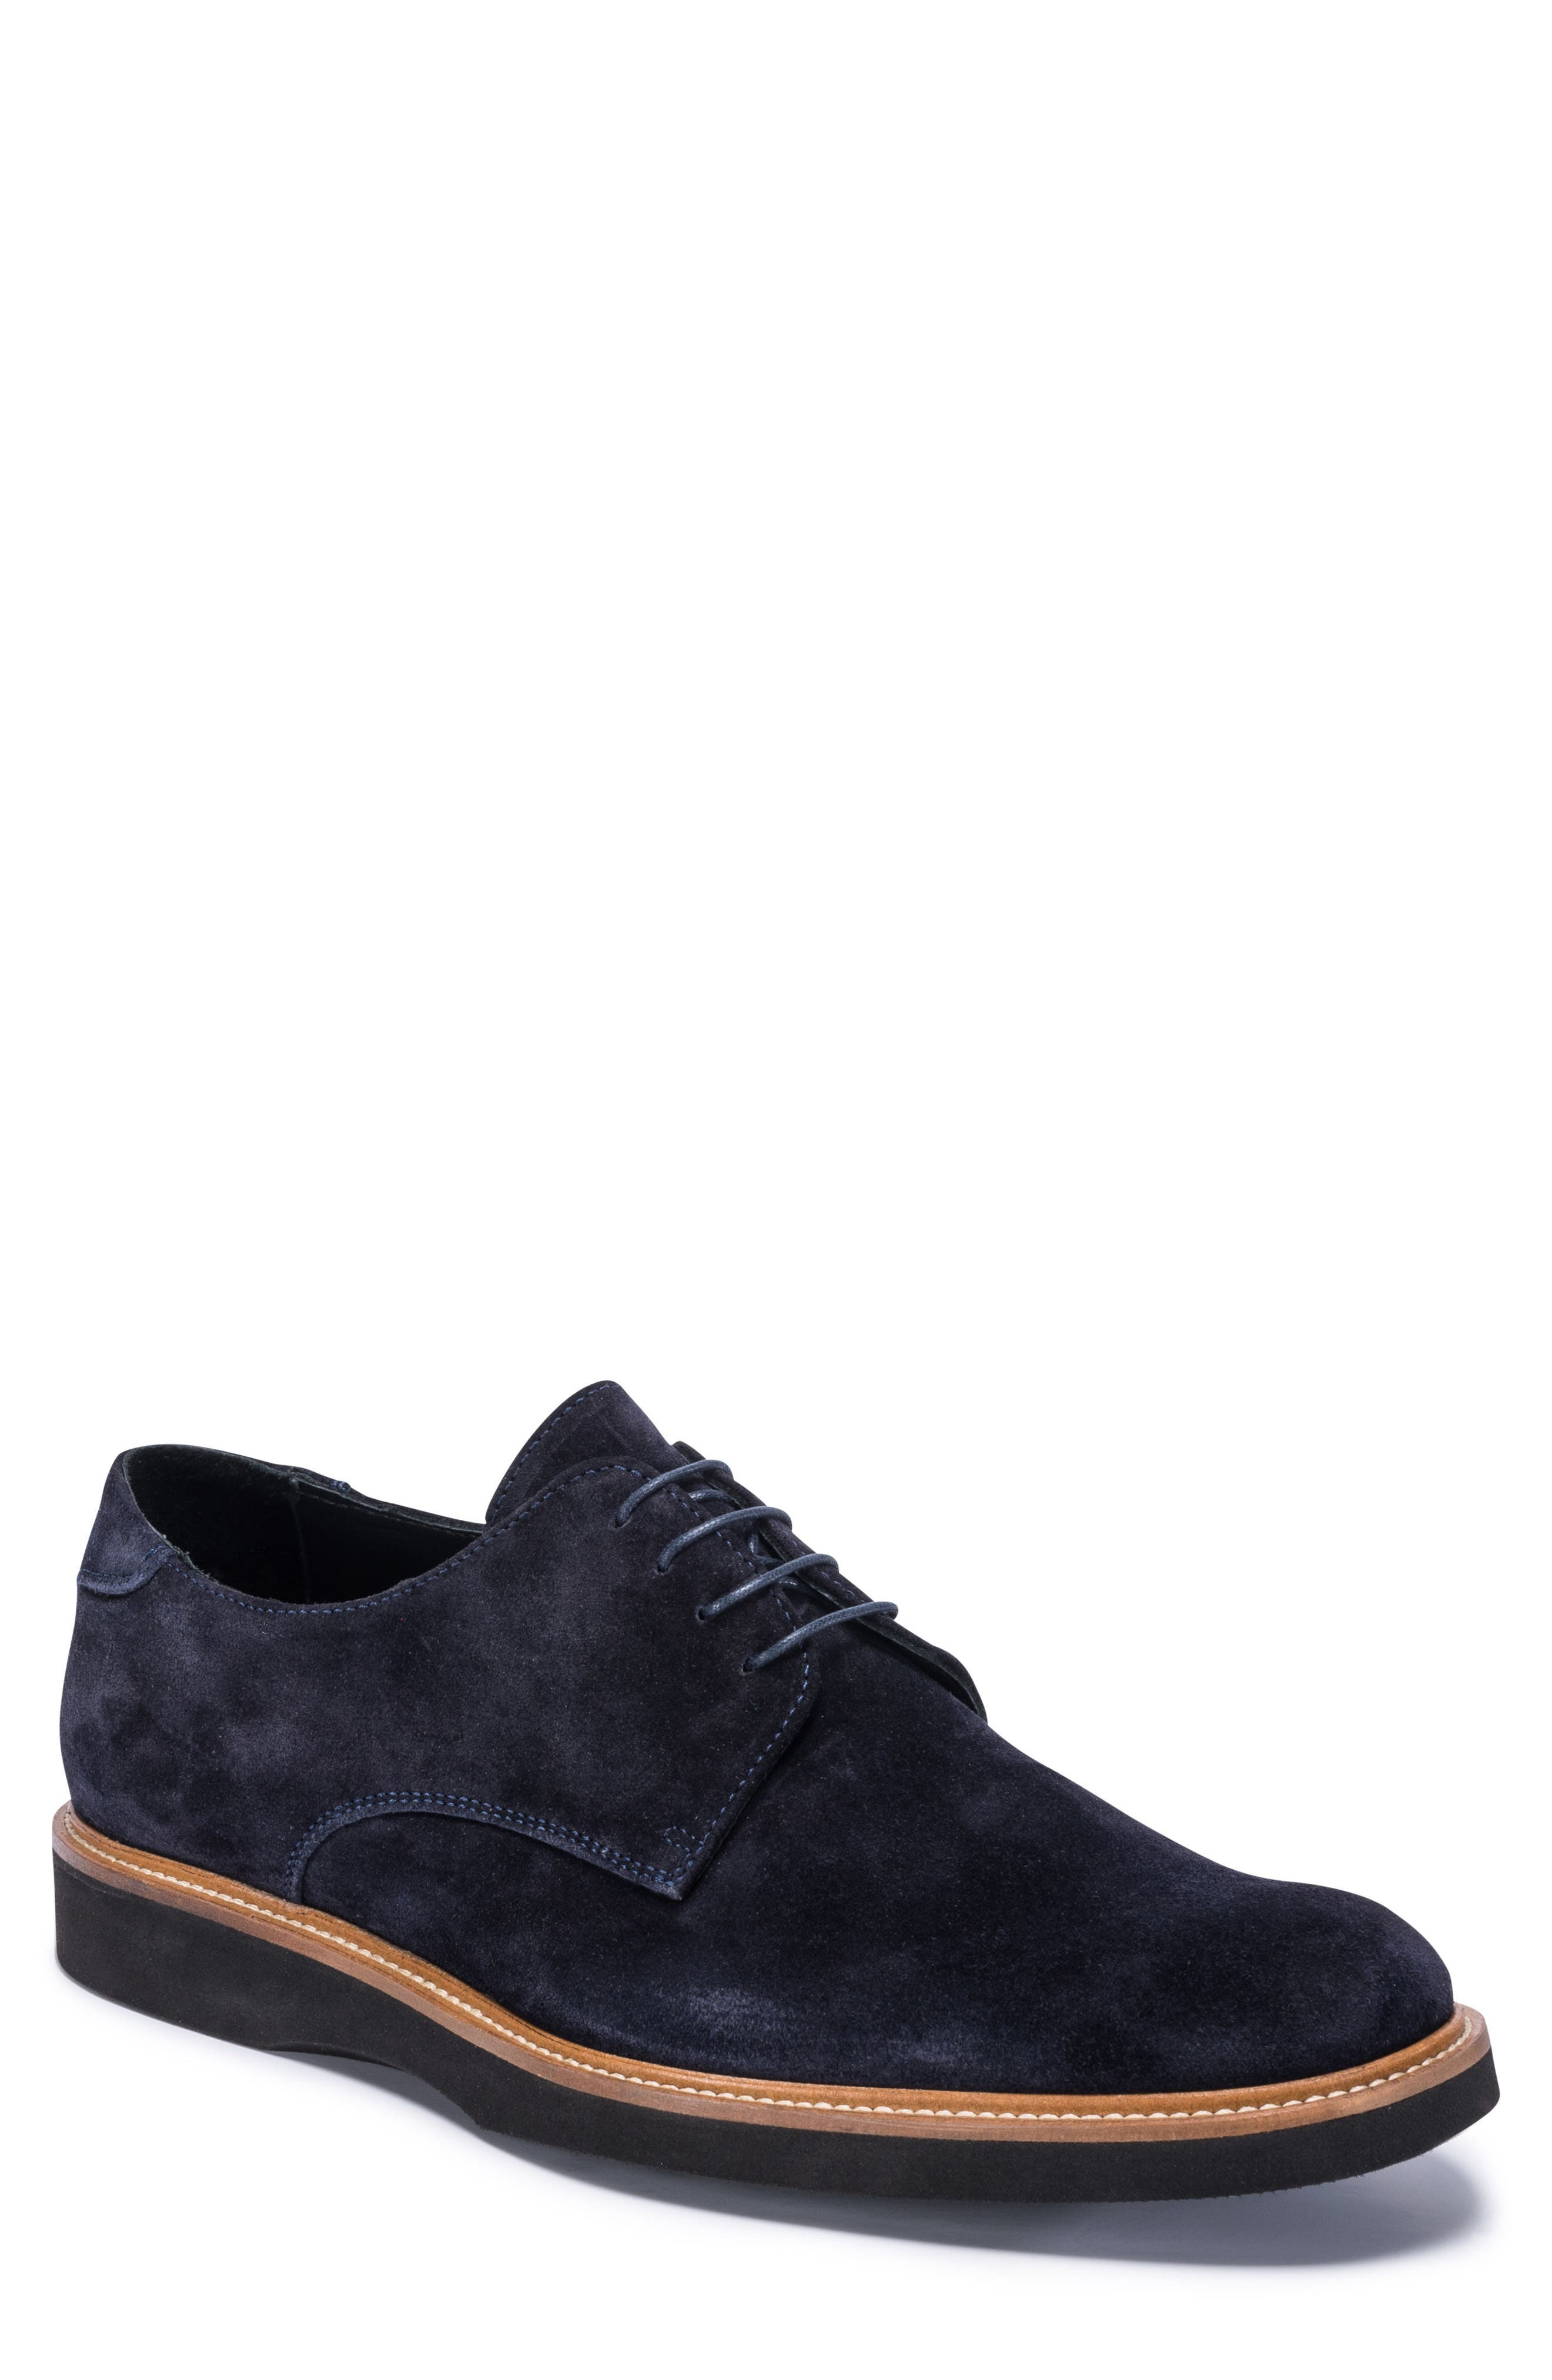 Siena Plain Toe Derby,                             Main thumbnail 1, color,                             Blue Suede